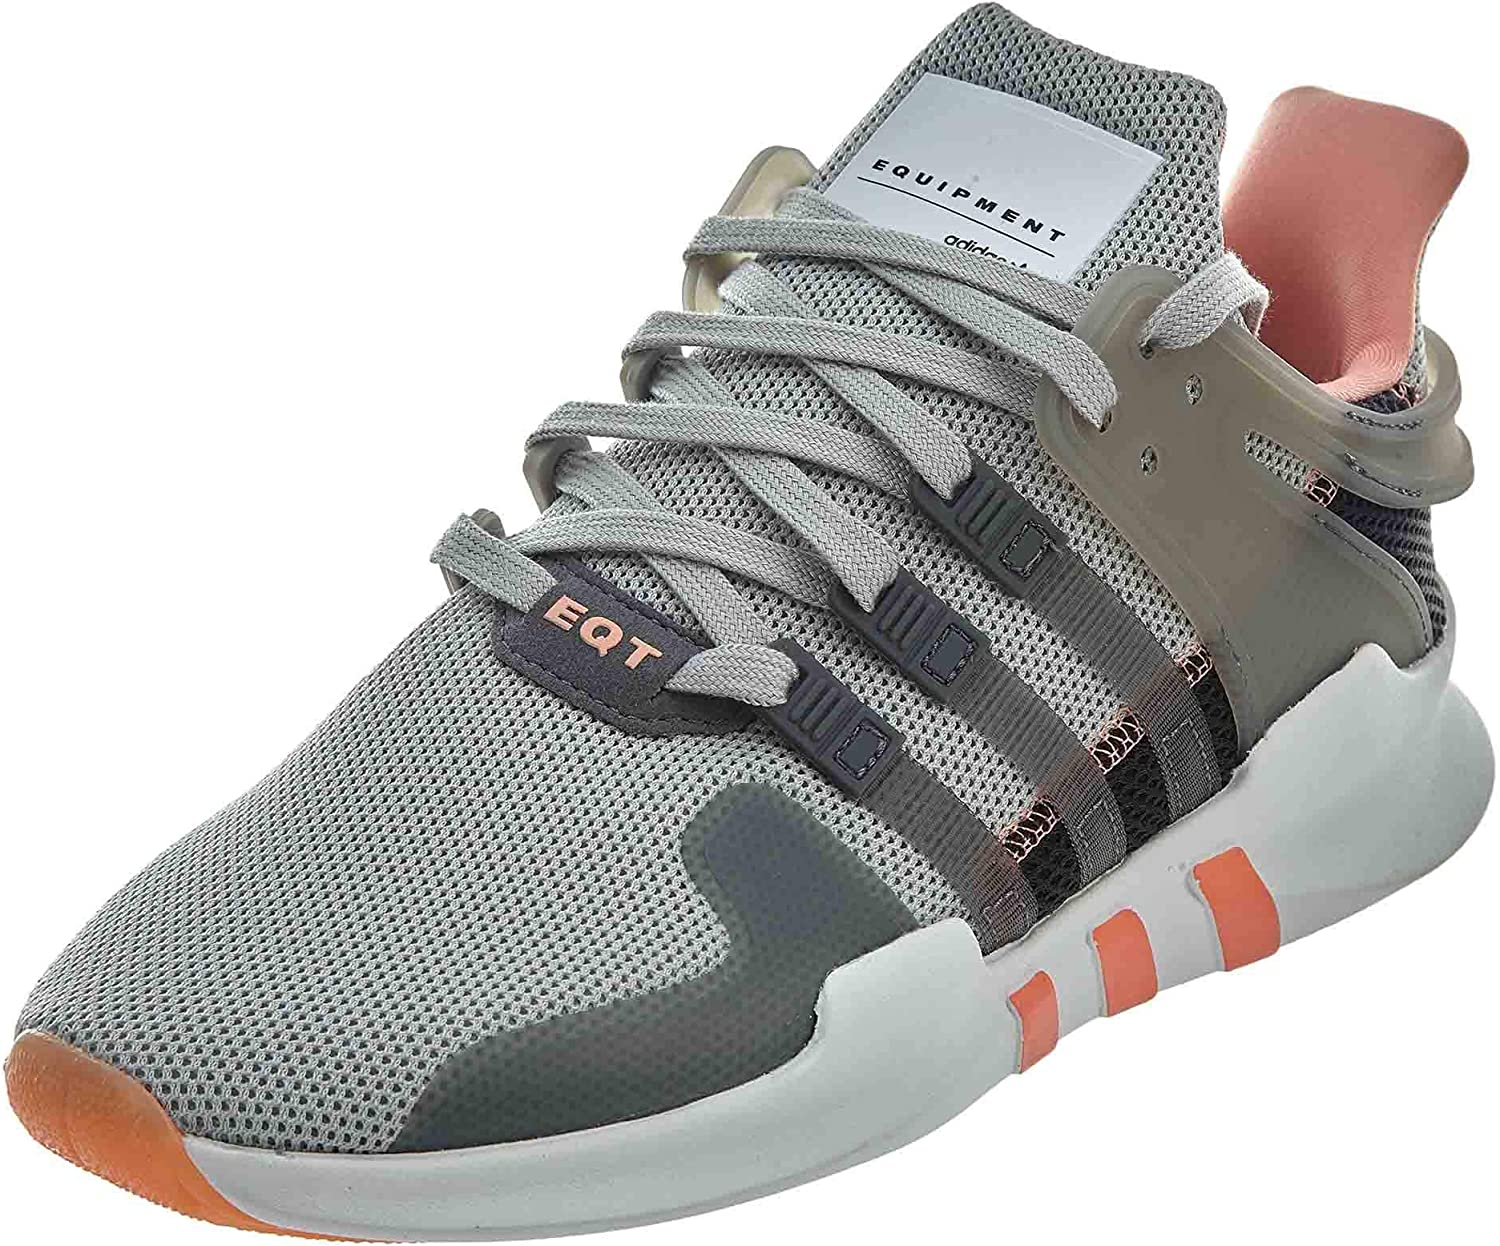 Adidas EQT Support Adv Womens Style   Cq2254-grey coral Cq2254 Size 9.5